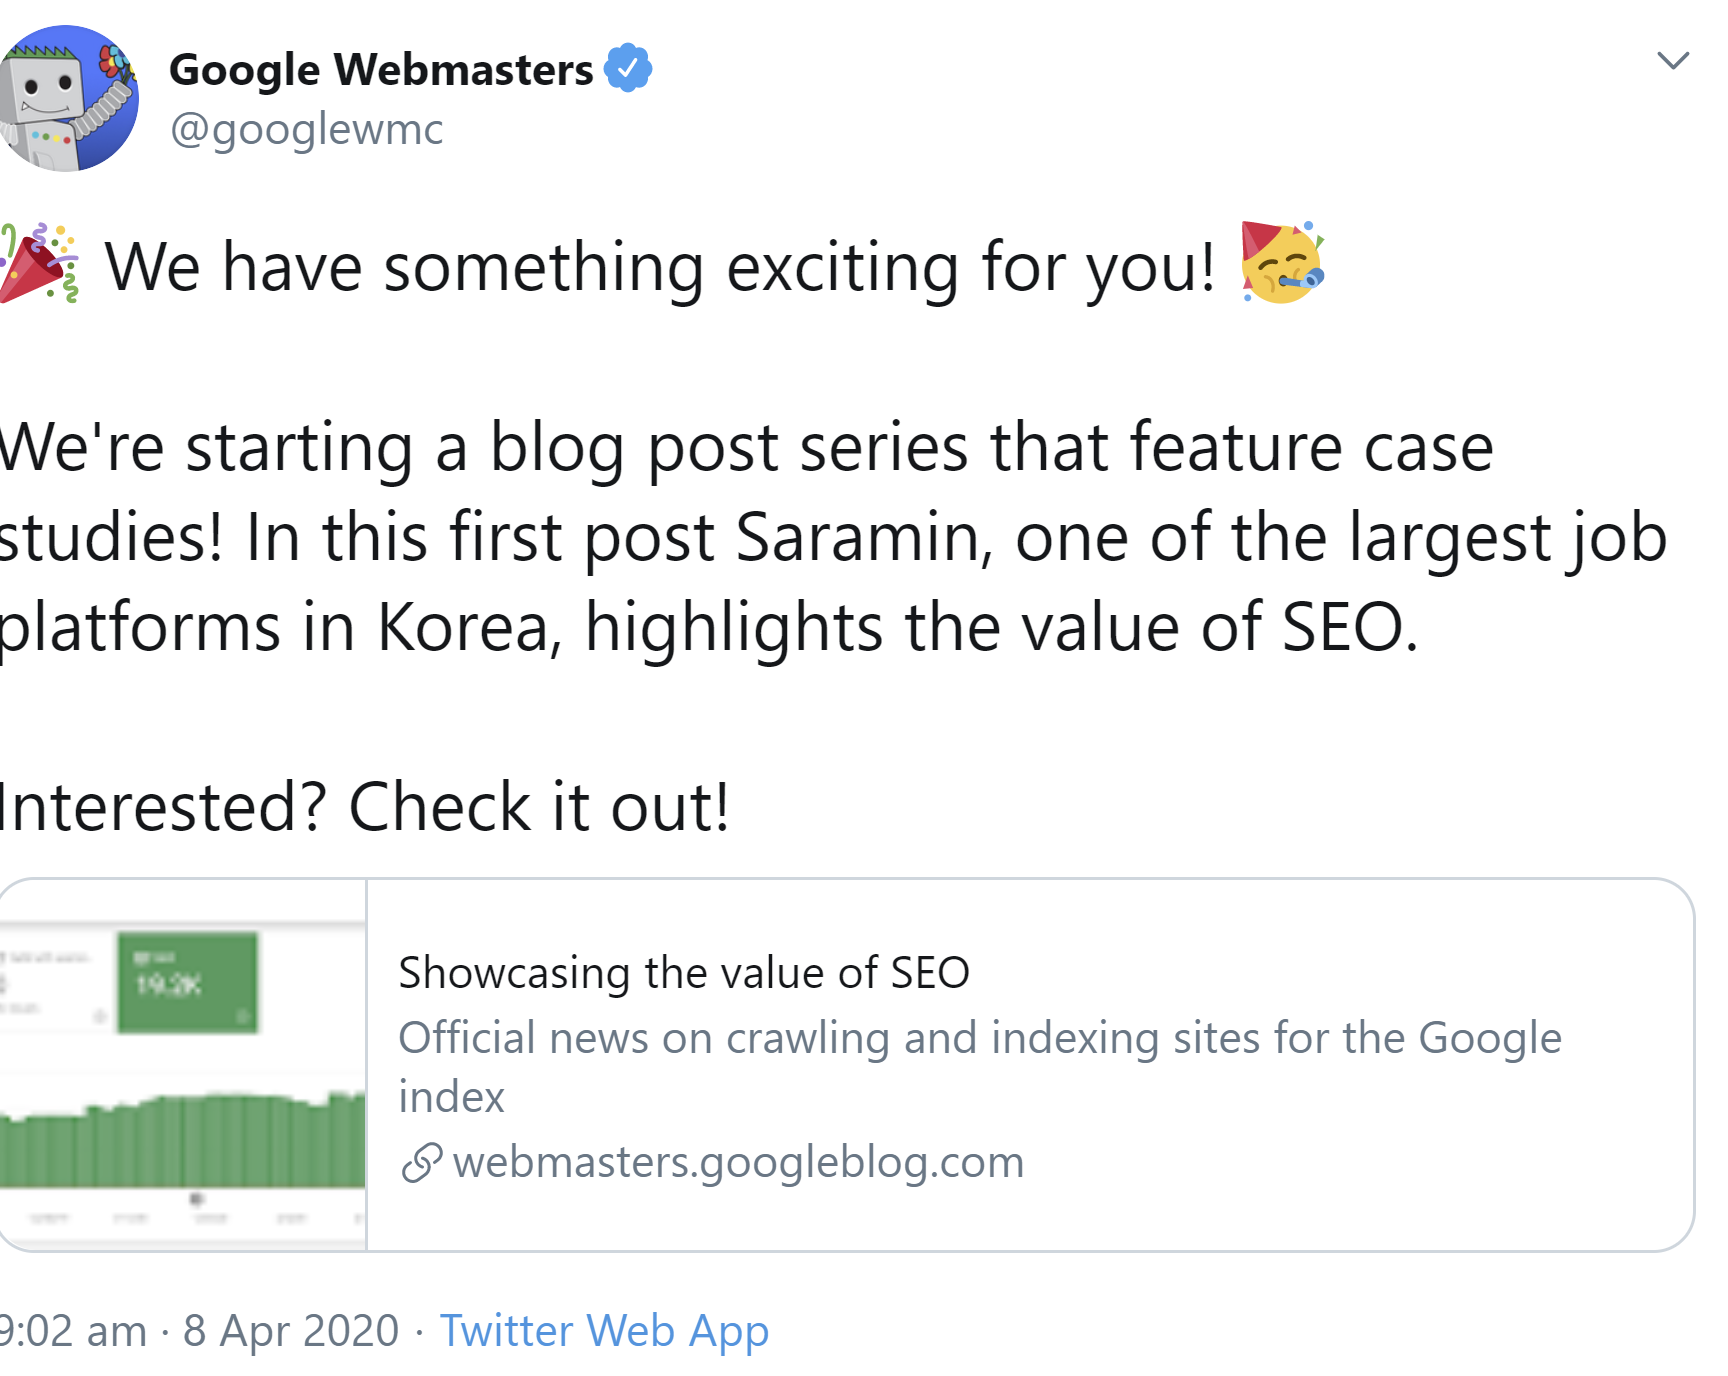 Google: New Blog Series With SEO Case Studies